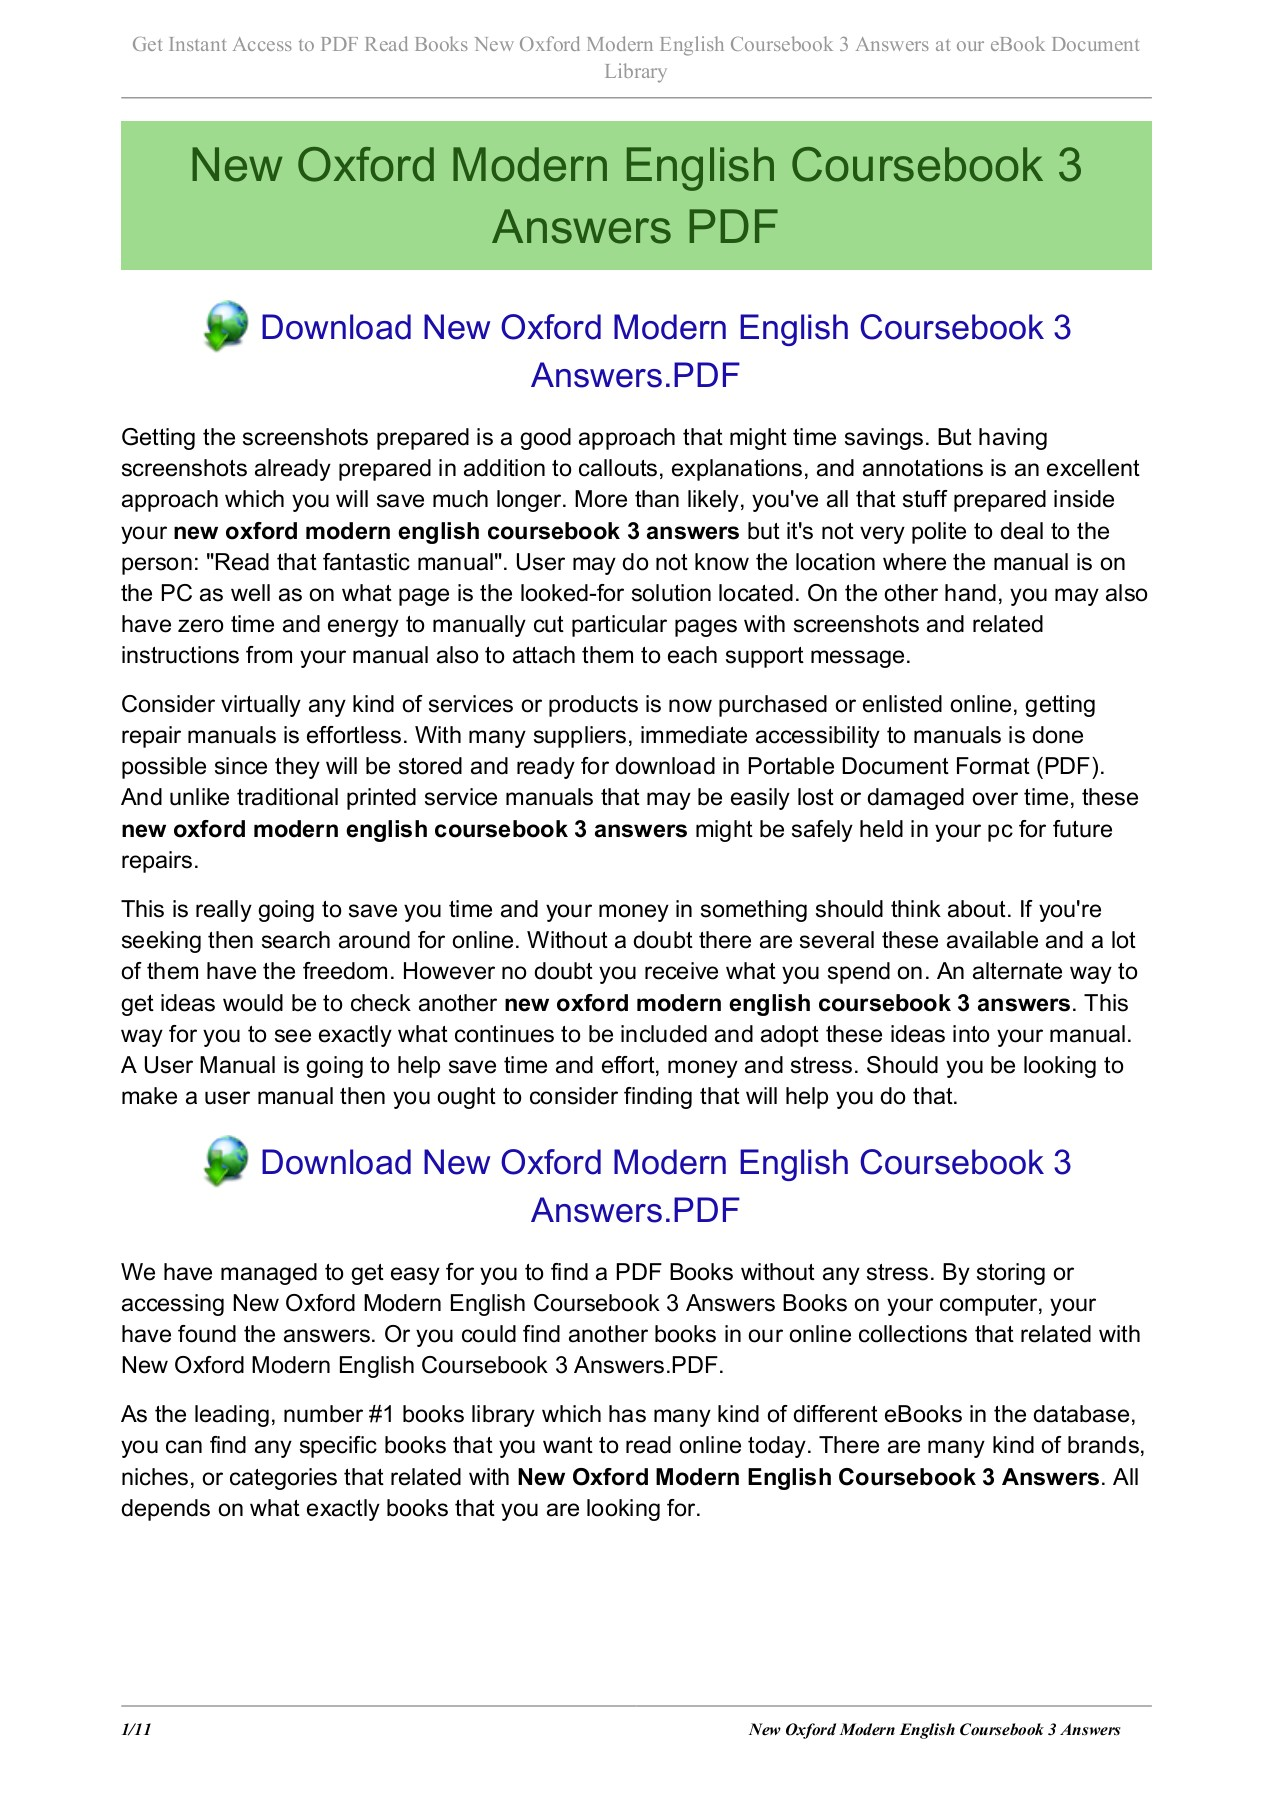 New Oxford Modern English Coursebook 3 Answers Pages 1 11